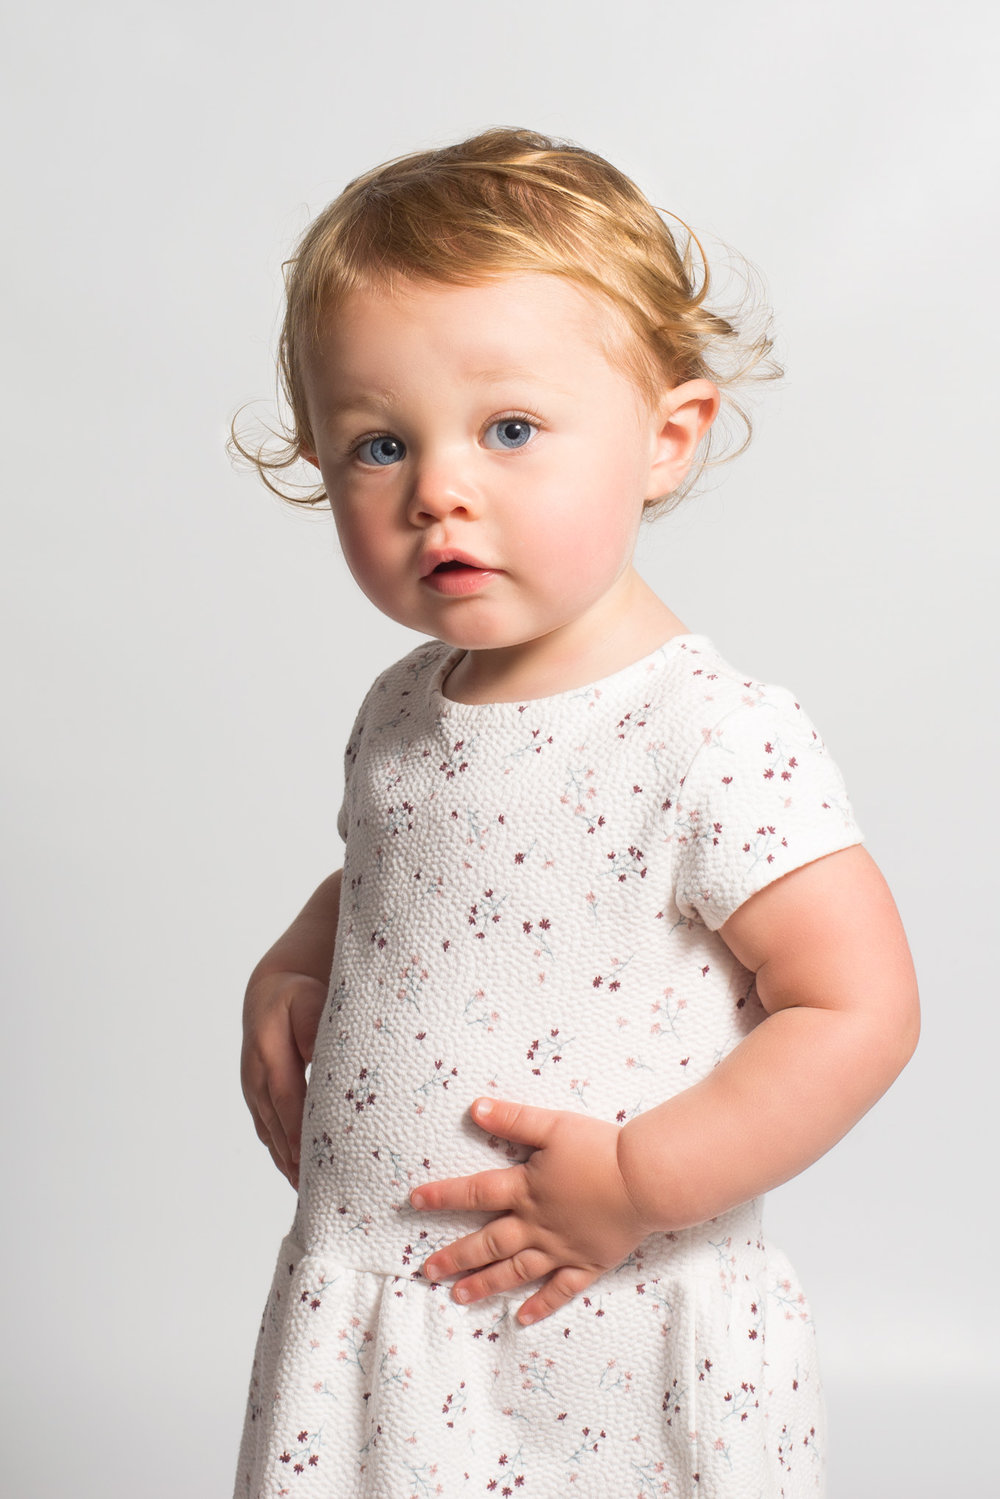 Adorable studio portrait | Children's Photography